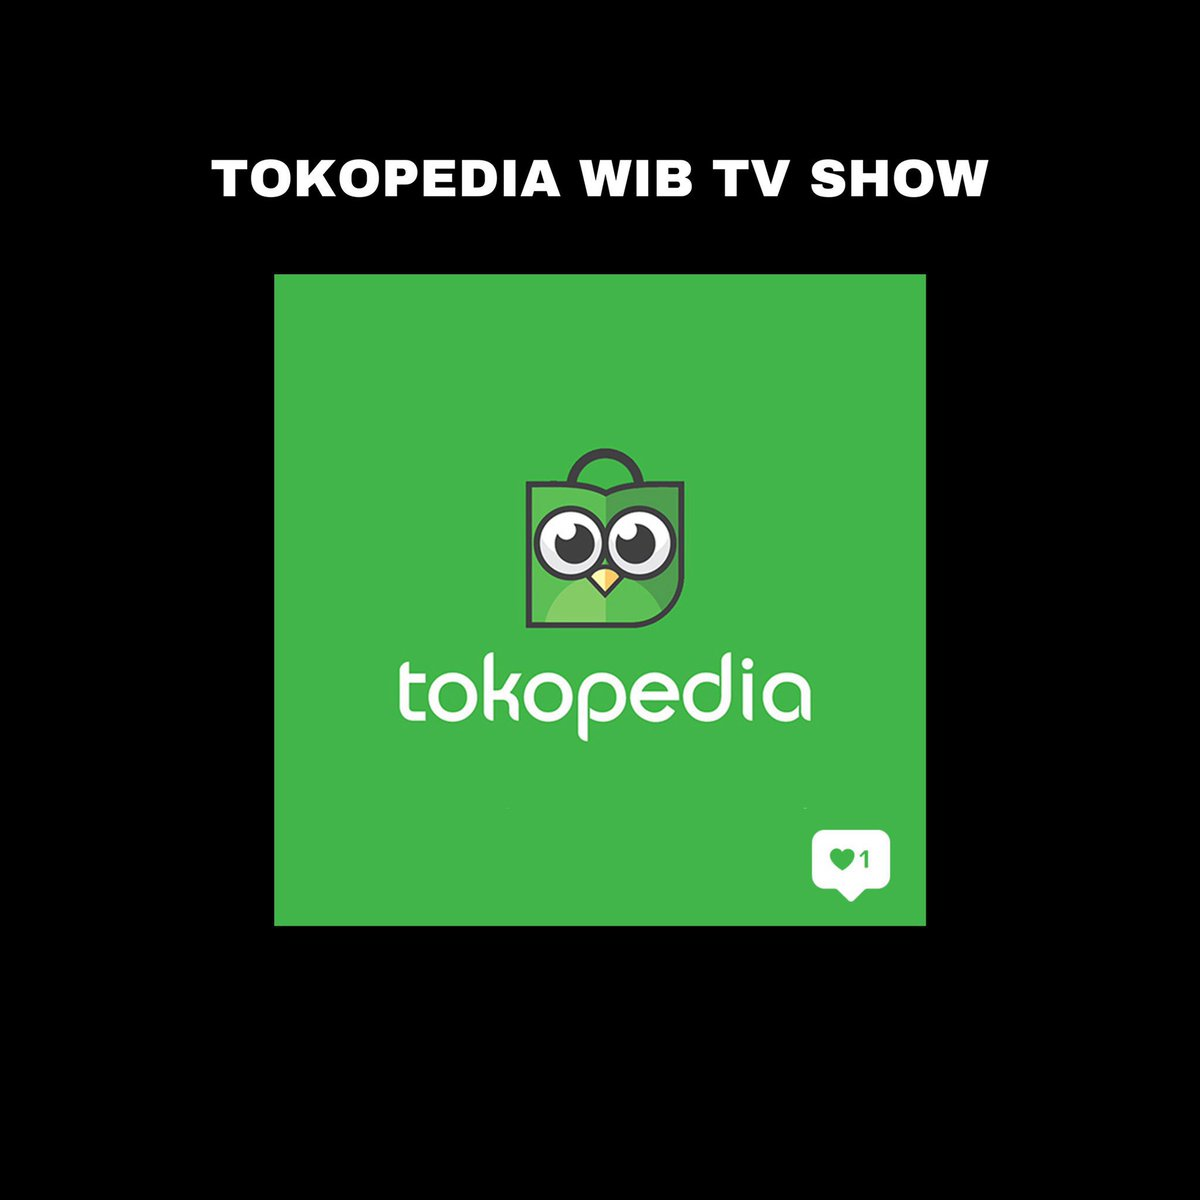 [📢] TOKOPEDIA   ATEEZ have been nominated again to perform on WIB, a show by Tokopedia. Many groups have performed on Tokopedia so this will be great exposure for them so make sure to vote. Voting ends in 5 days.   🔗:   #ATEEZ #에이티즈 @ATEEZofficial